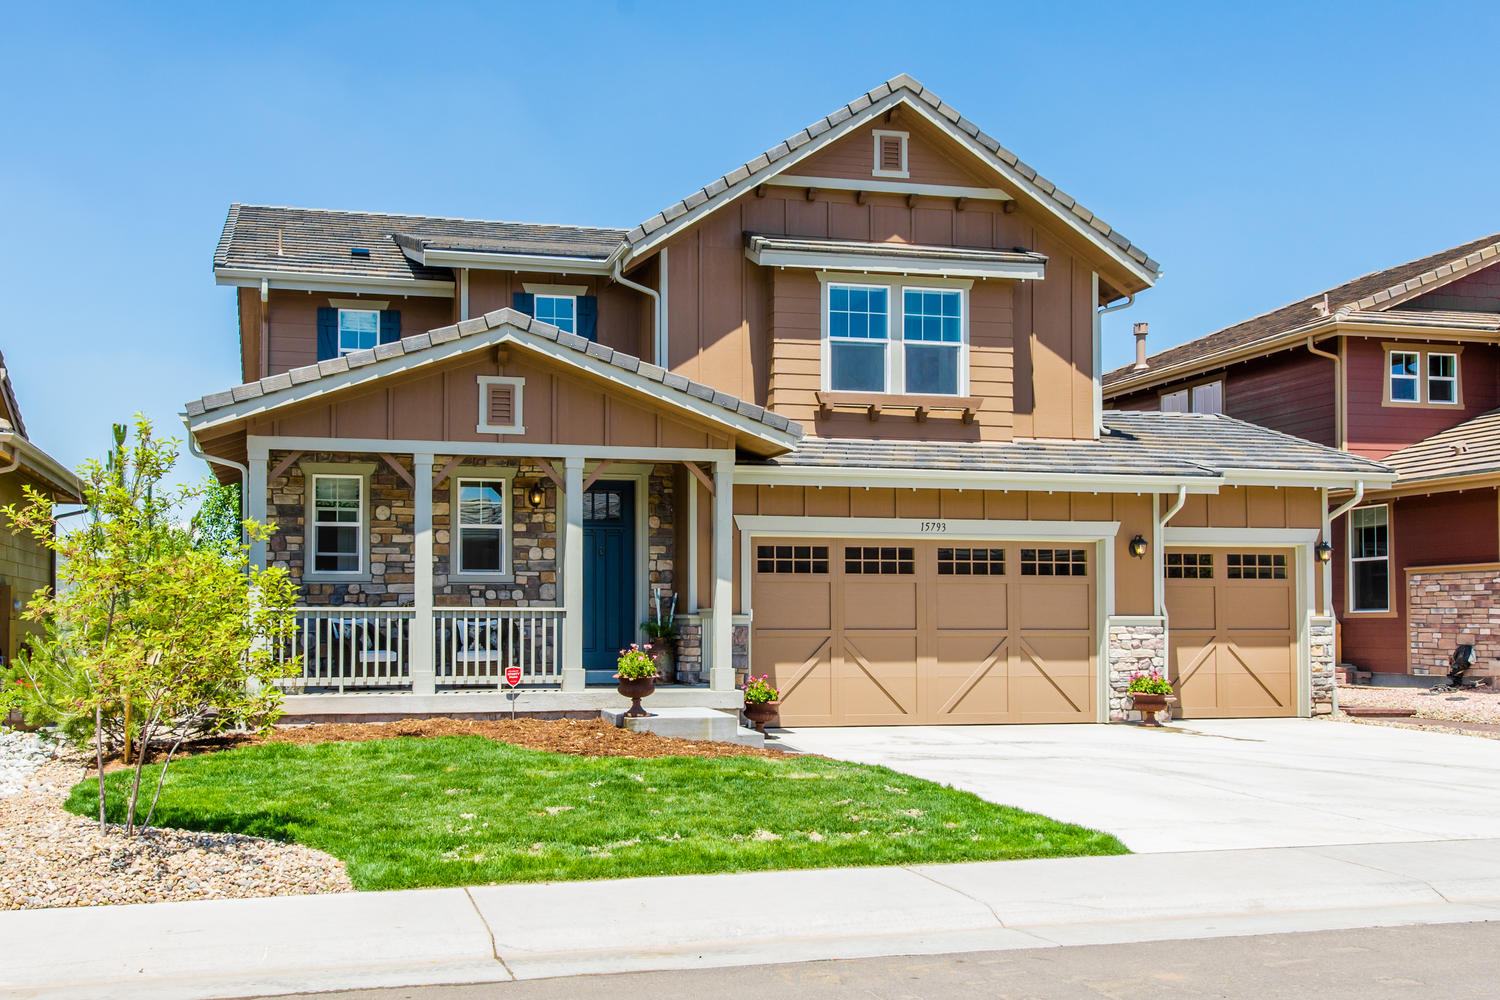 Single Family Home for Sale at Stunning views and beautiful upgrades! 15793 Burrowing Owl Morrison, Colorado, 80465 United States